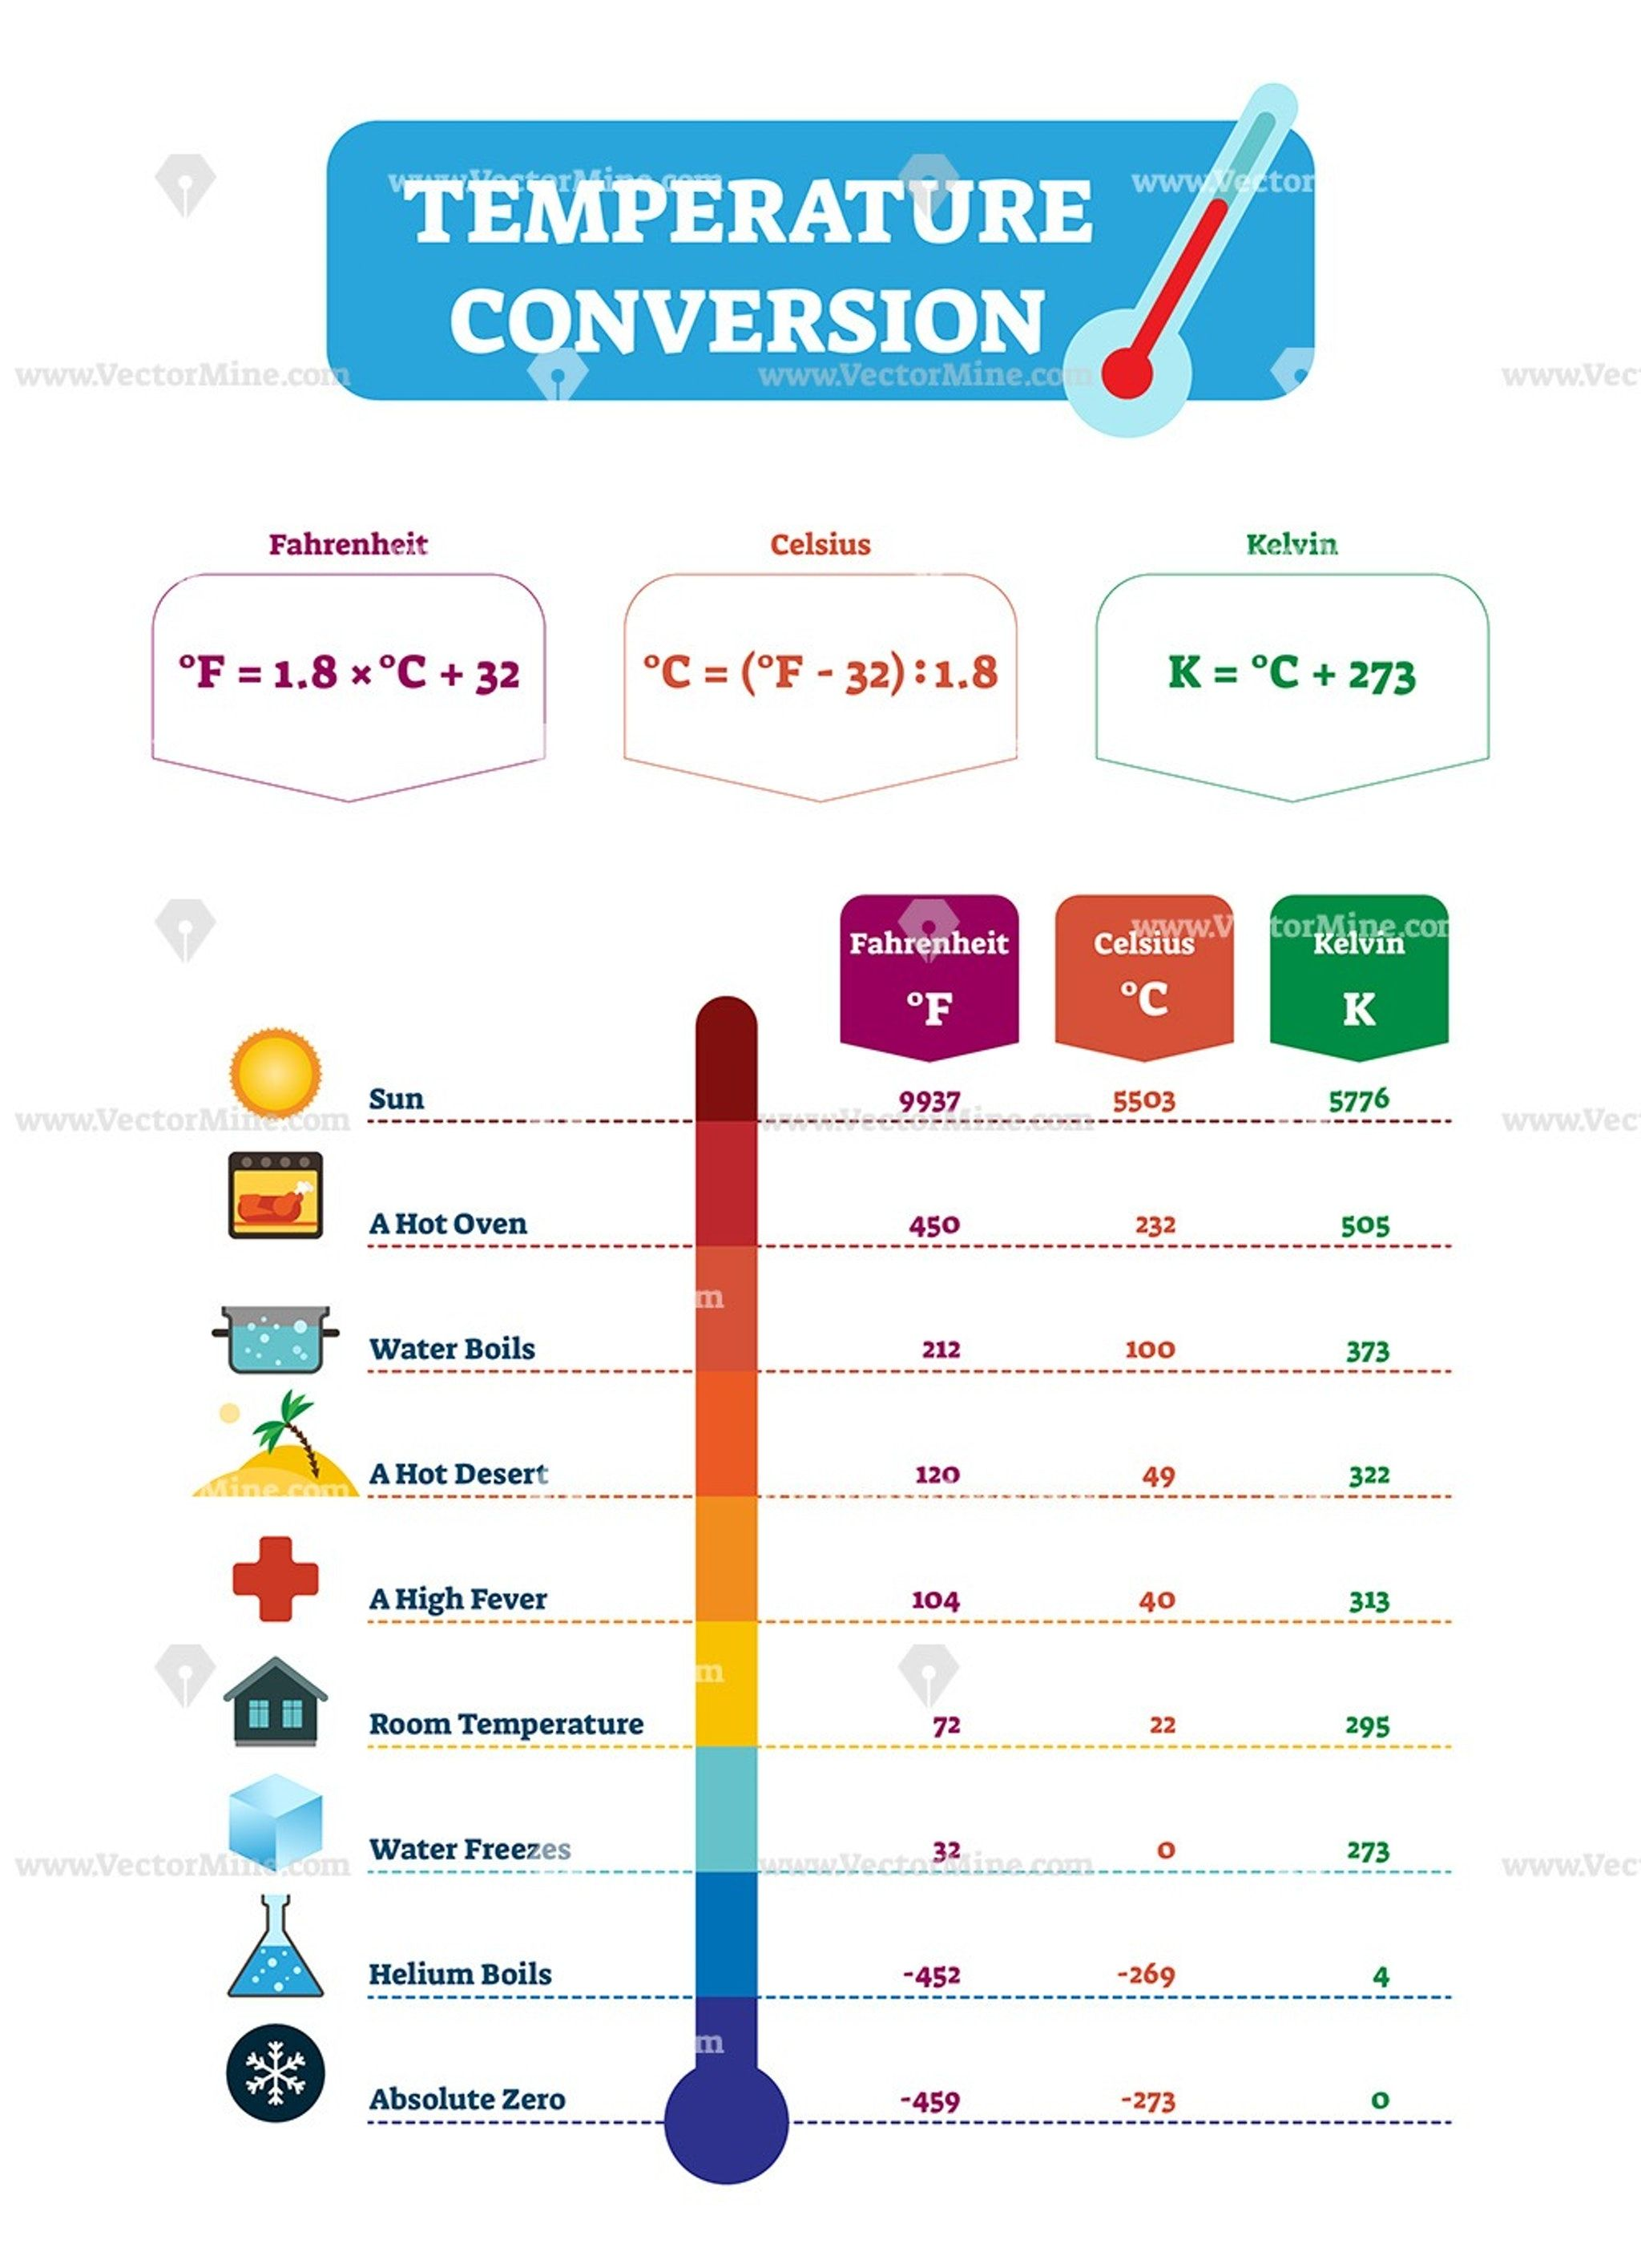 Temperature conversion vector illustration chart Study